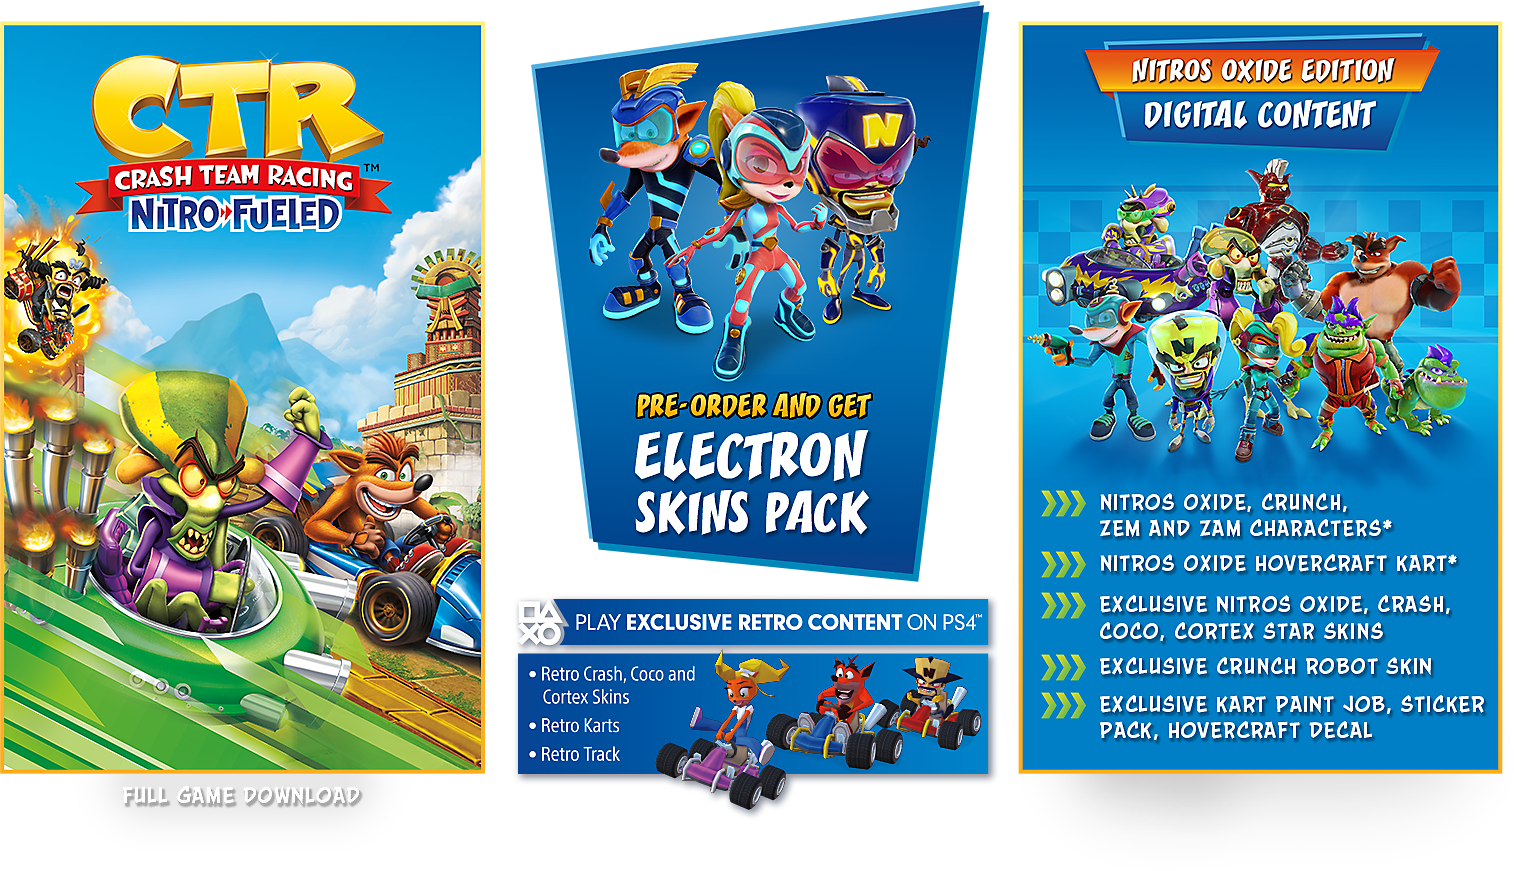 Crash Team Racing Nitro-Fueled Nitros Oxide Game Edition Contents